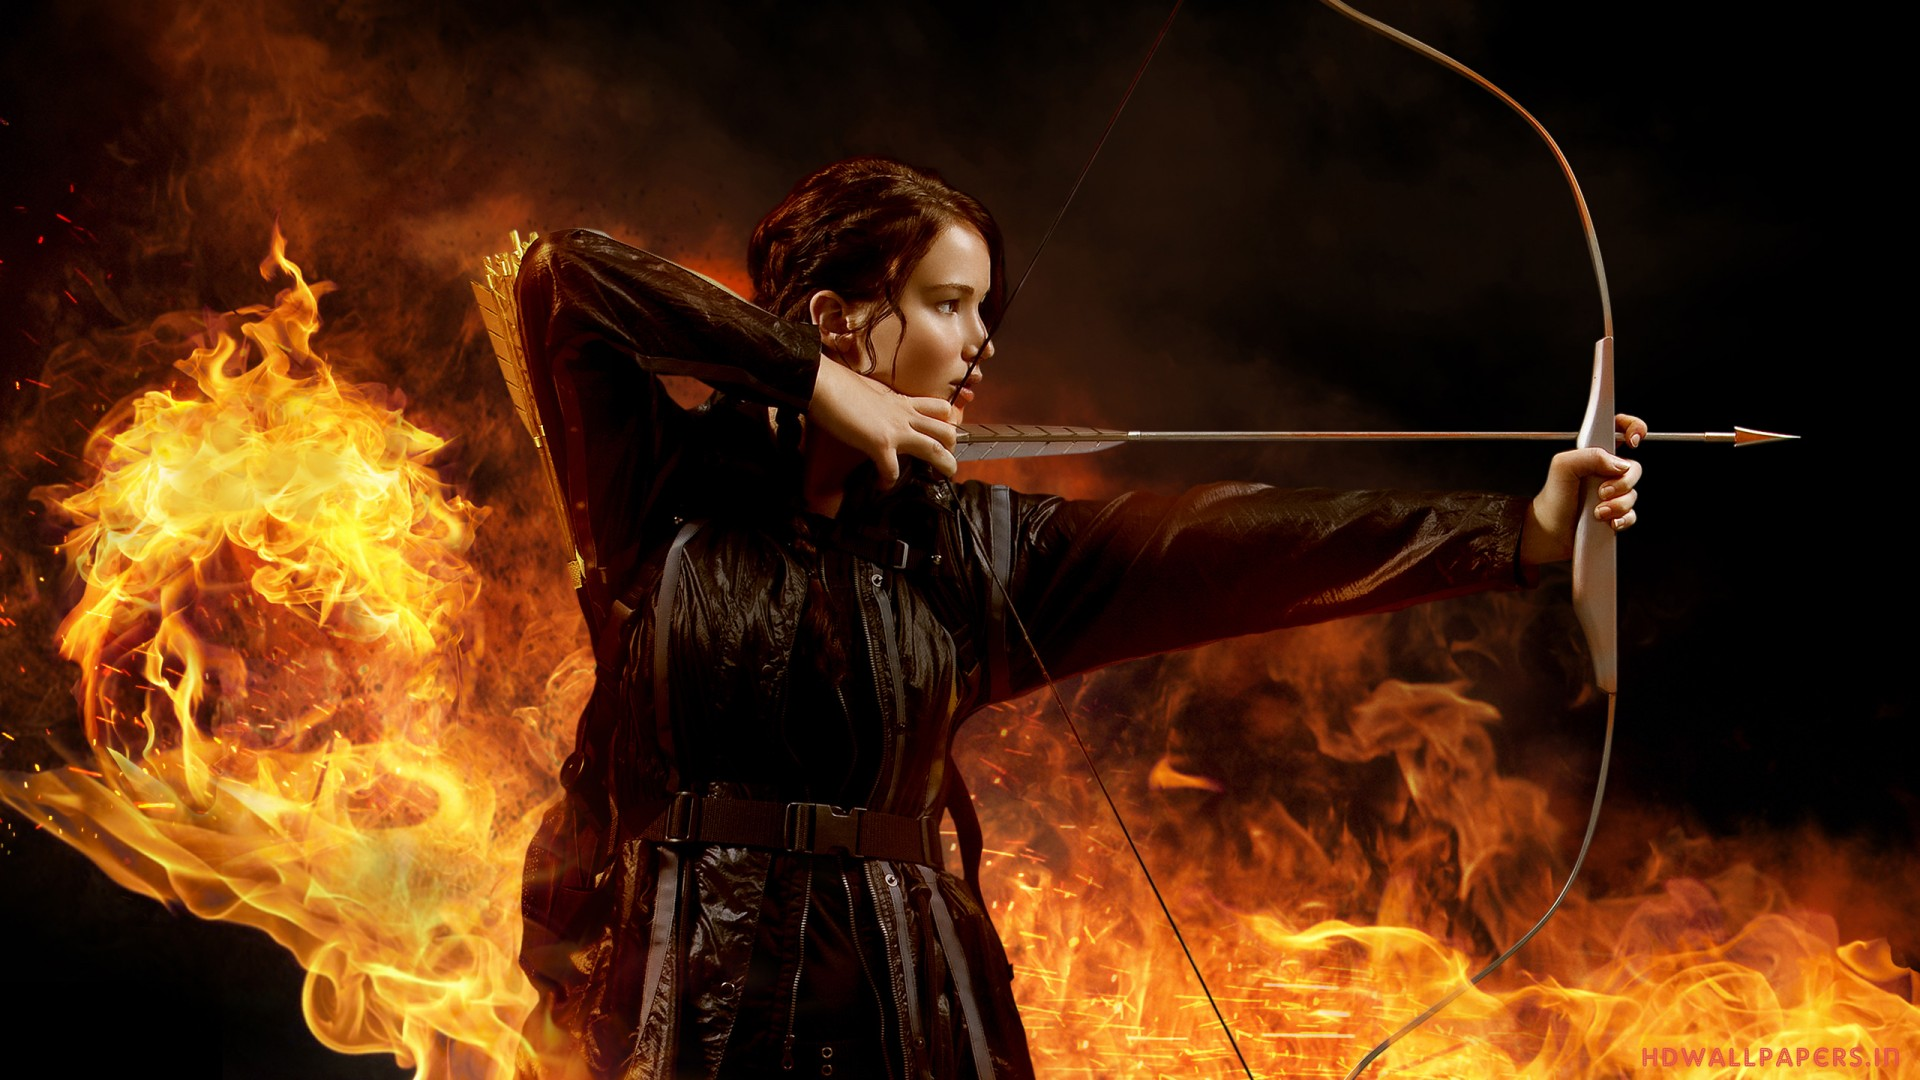 Jennifer Lawrence In The Hunger Games Wallpapers HD Wallpapers ID 12234